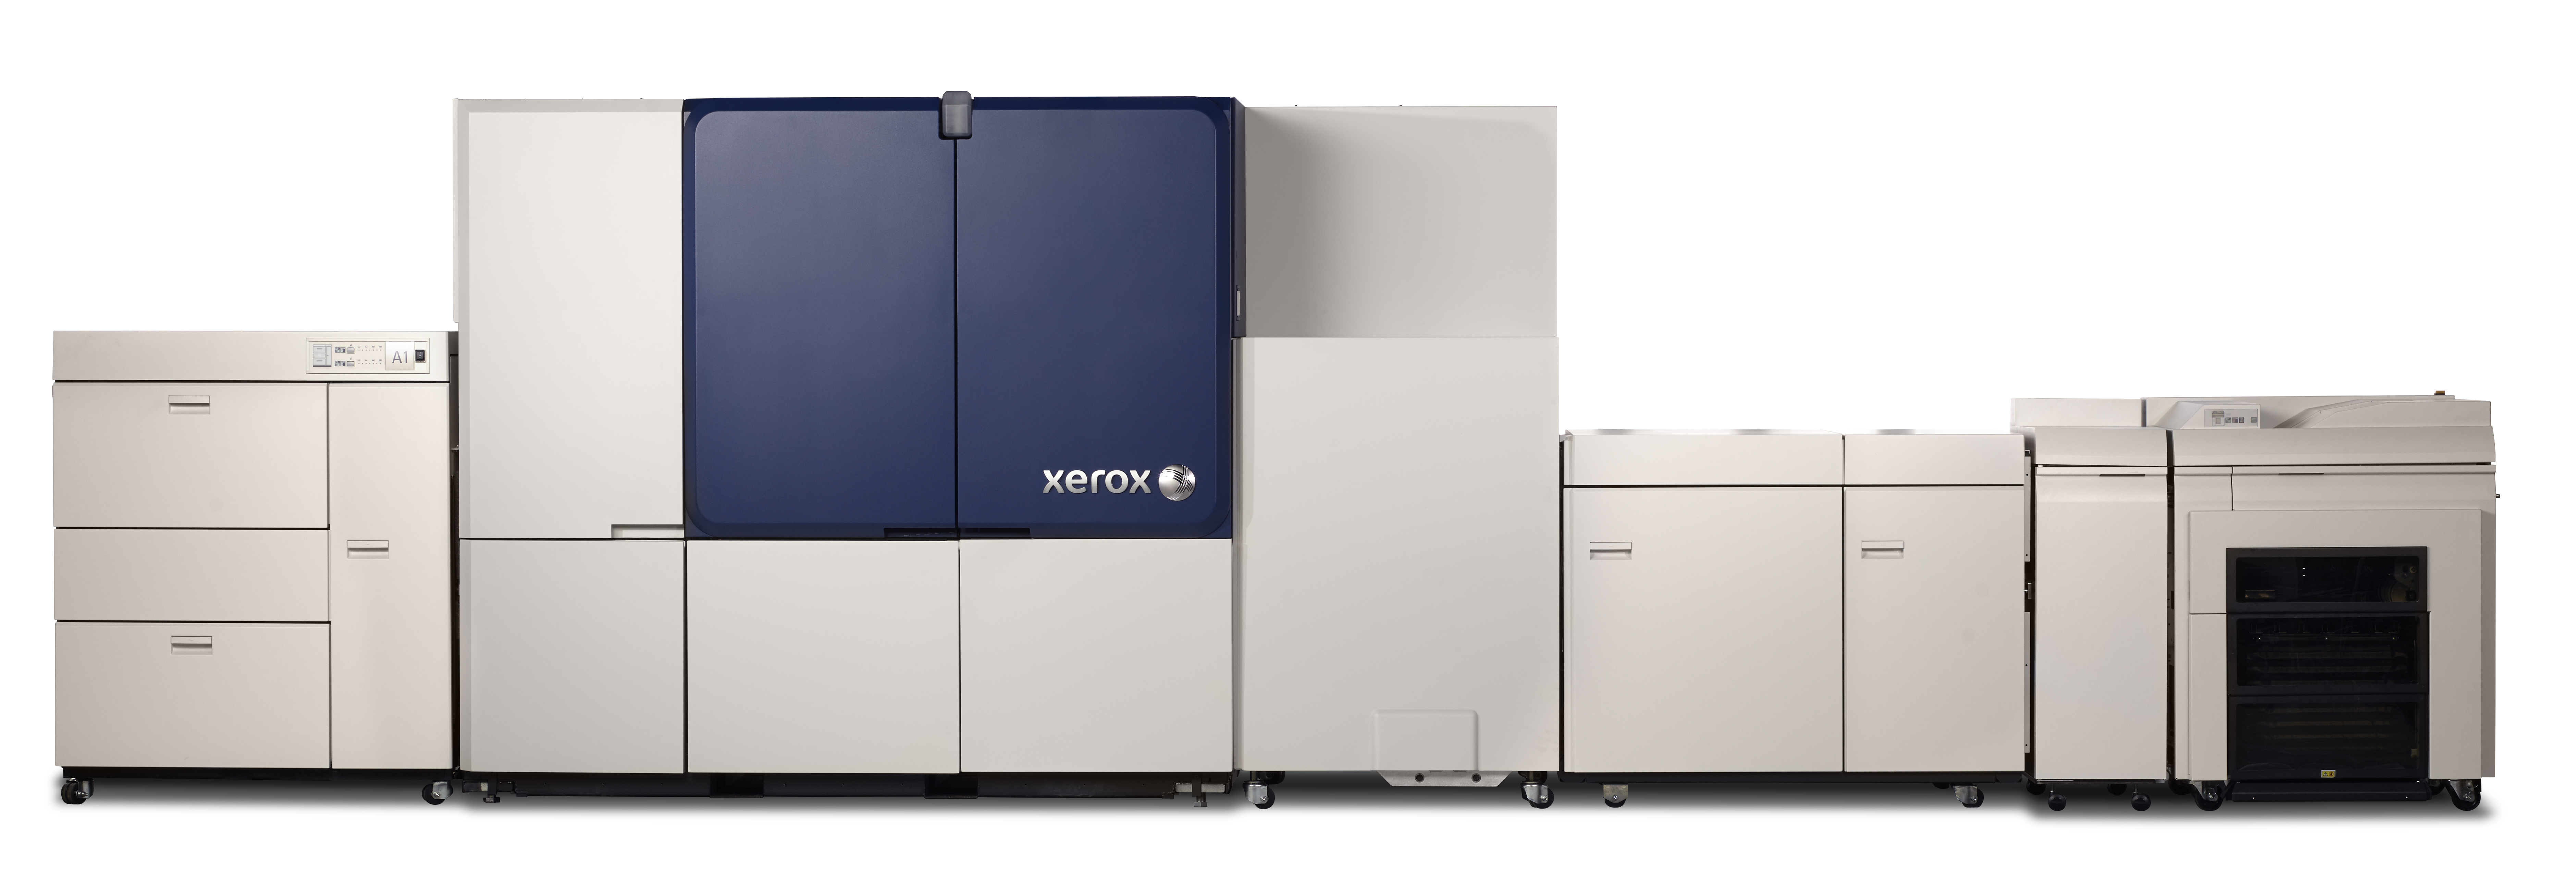 The Xerox Brenva HD Production Inkjet Press is Xerox's first cut-sheet inkjet press. The press addresses the needs of the transactional, light direct mail and book markets, and offers best-in-class automation and reliability features to maximize press productivity.